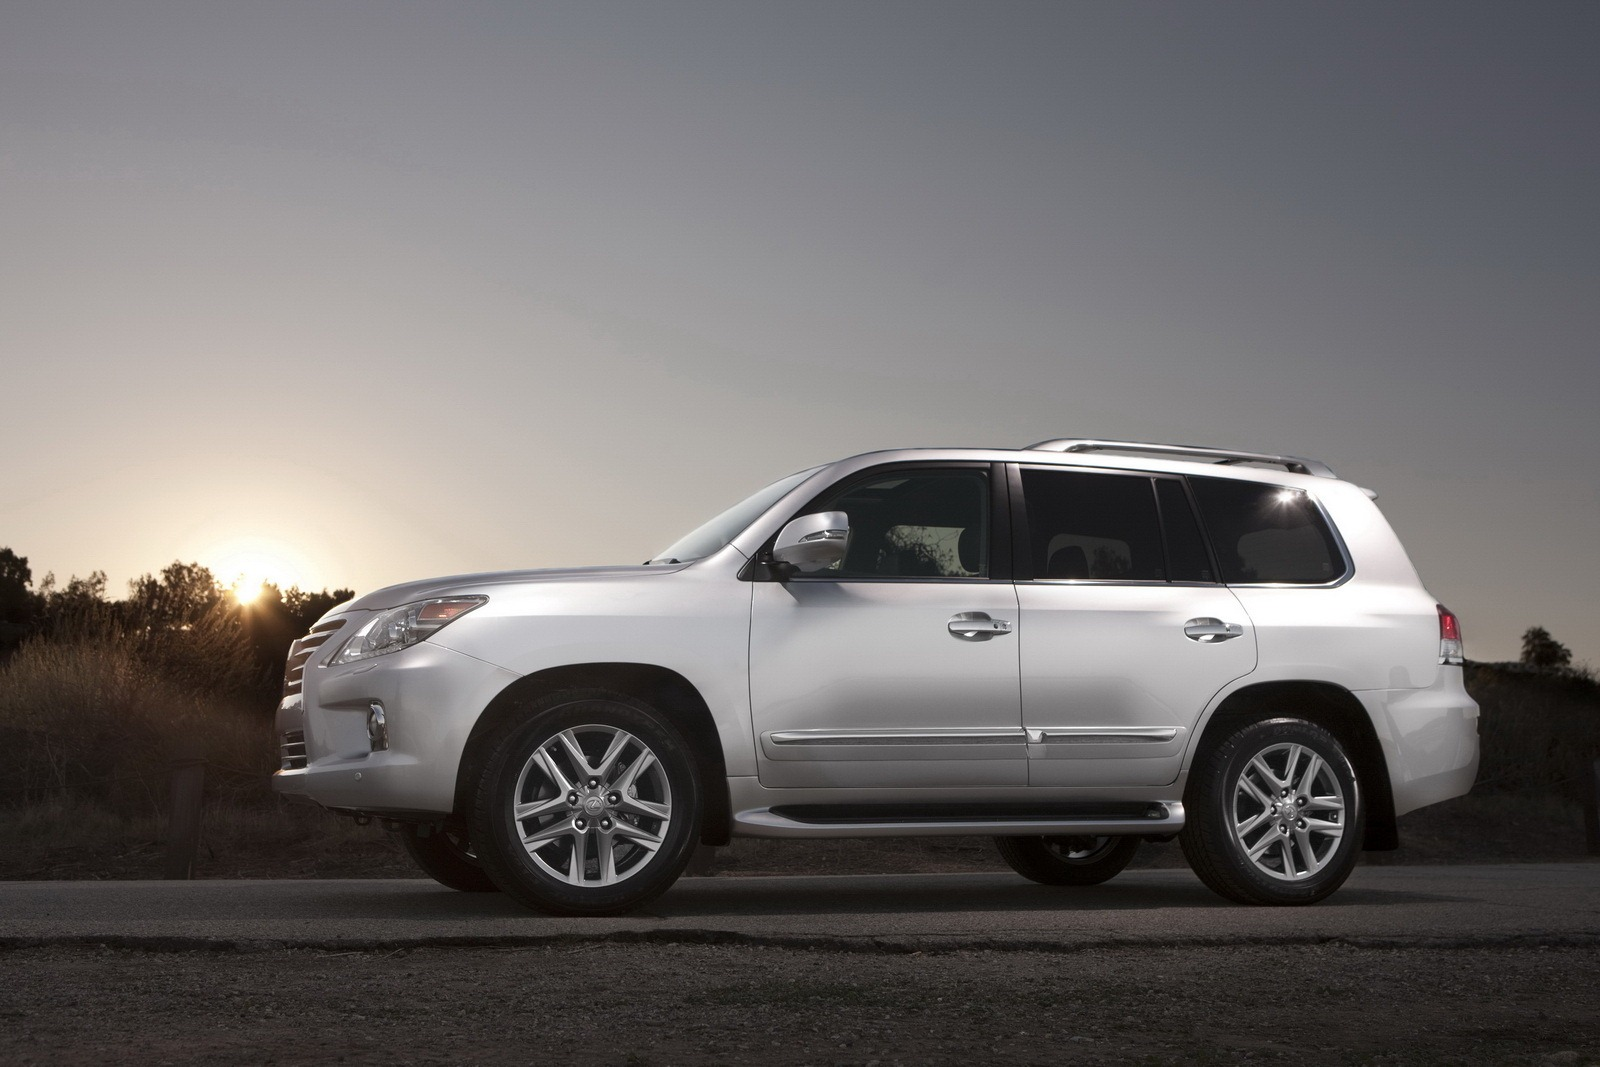 2013 Lexus LX 570 Luxury SUV 2 2013 Lexus LX 570 Luxury SUV   An Overview